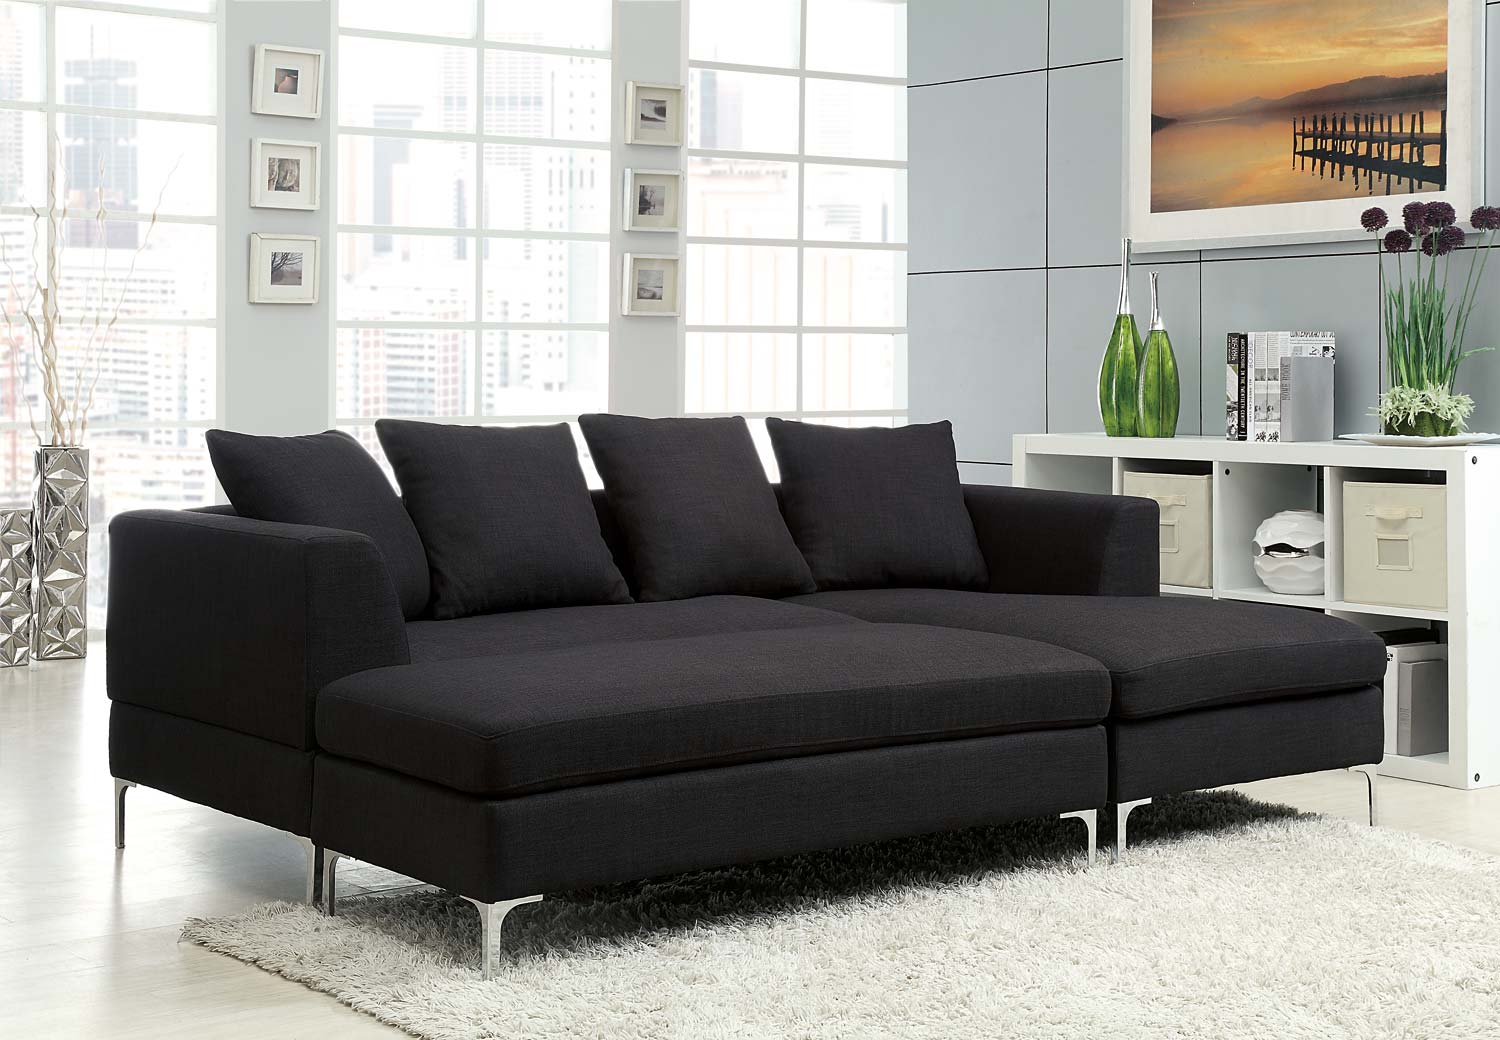 Homelegance zola sectional sofa set black linen like for Black fabric couches